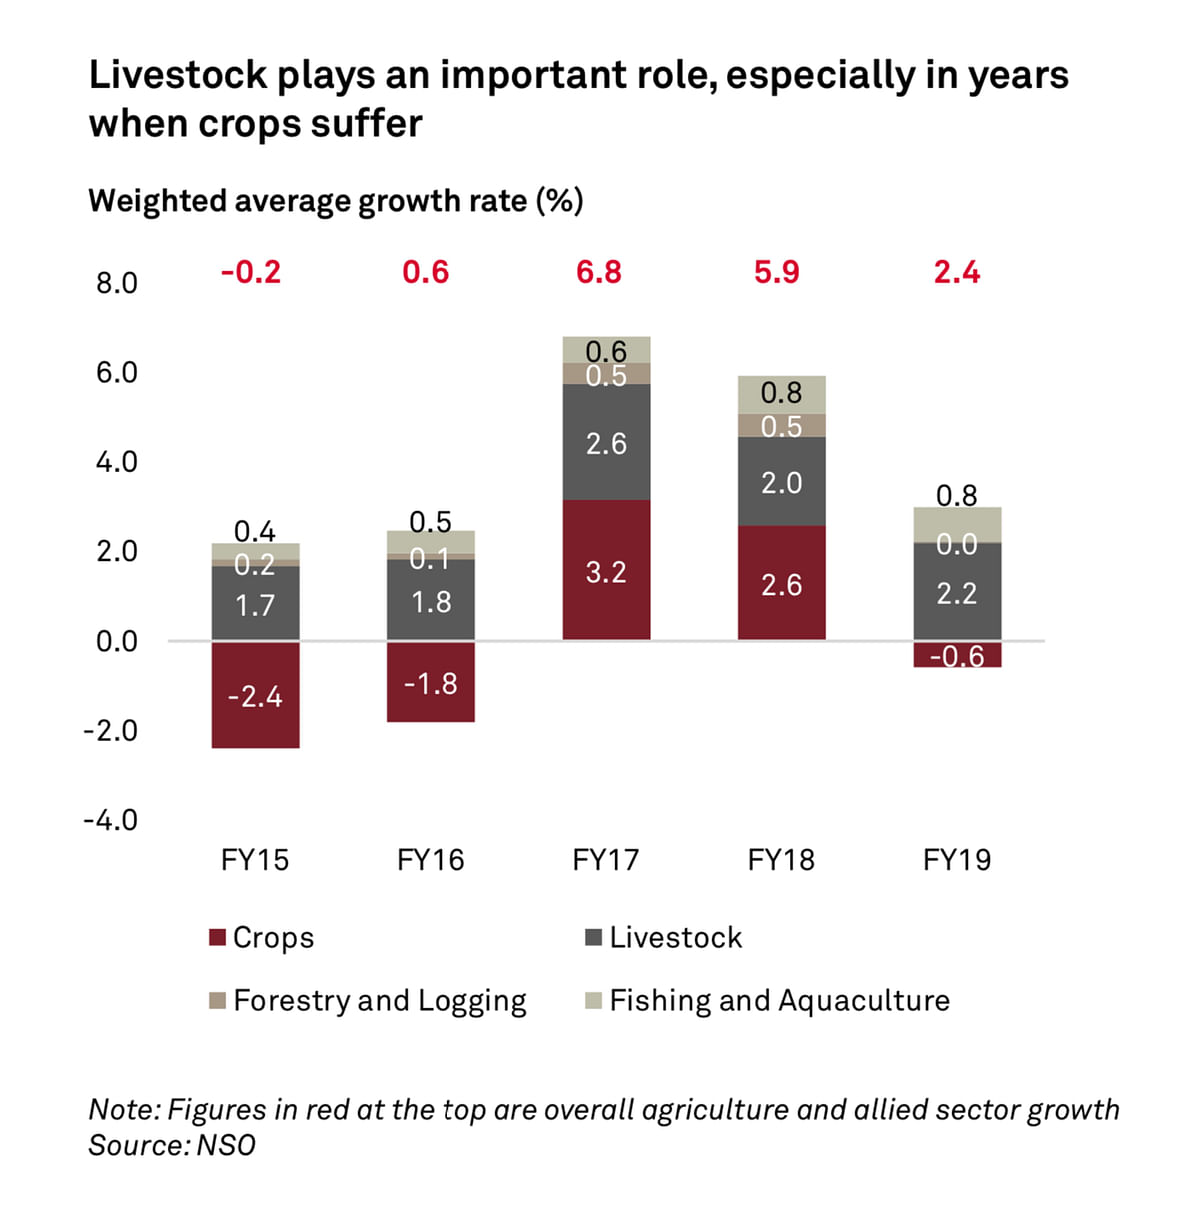 Livestock plays an important role, especially in years when crops suffer